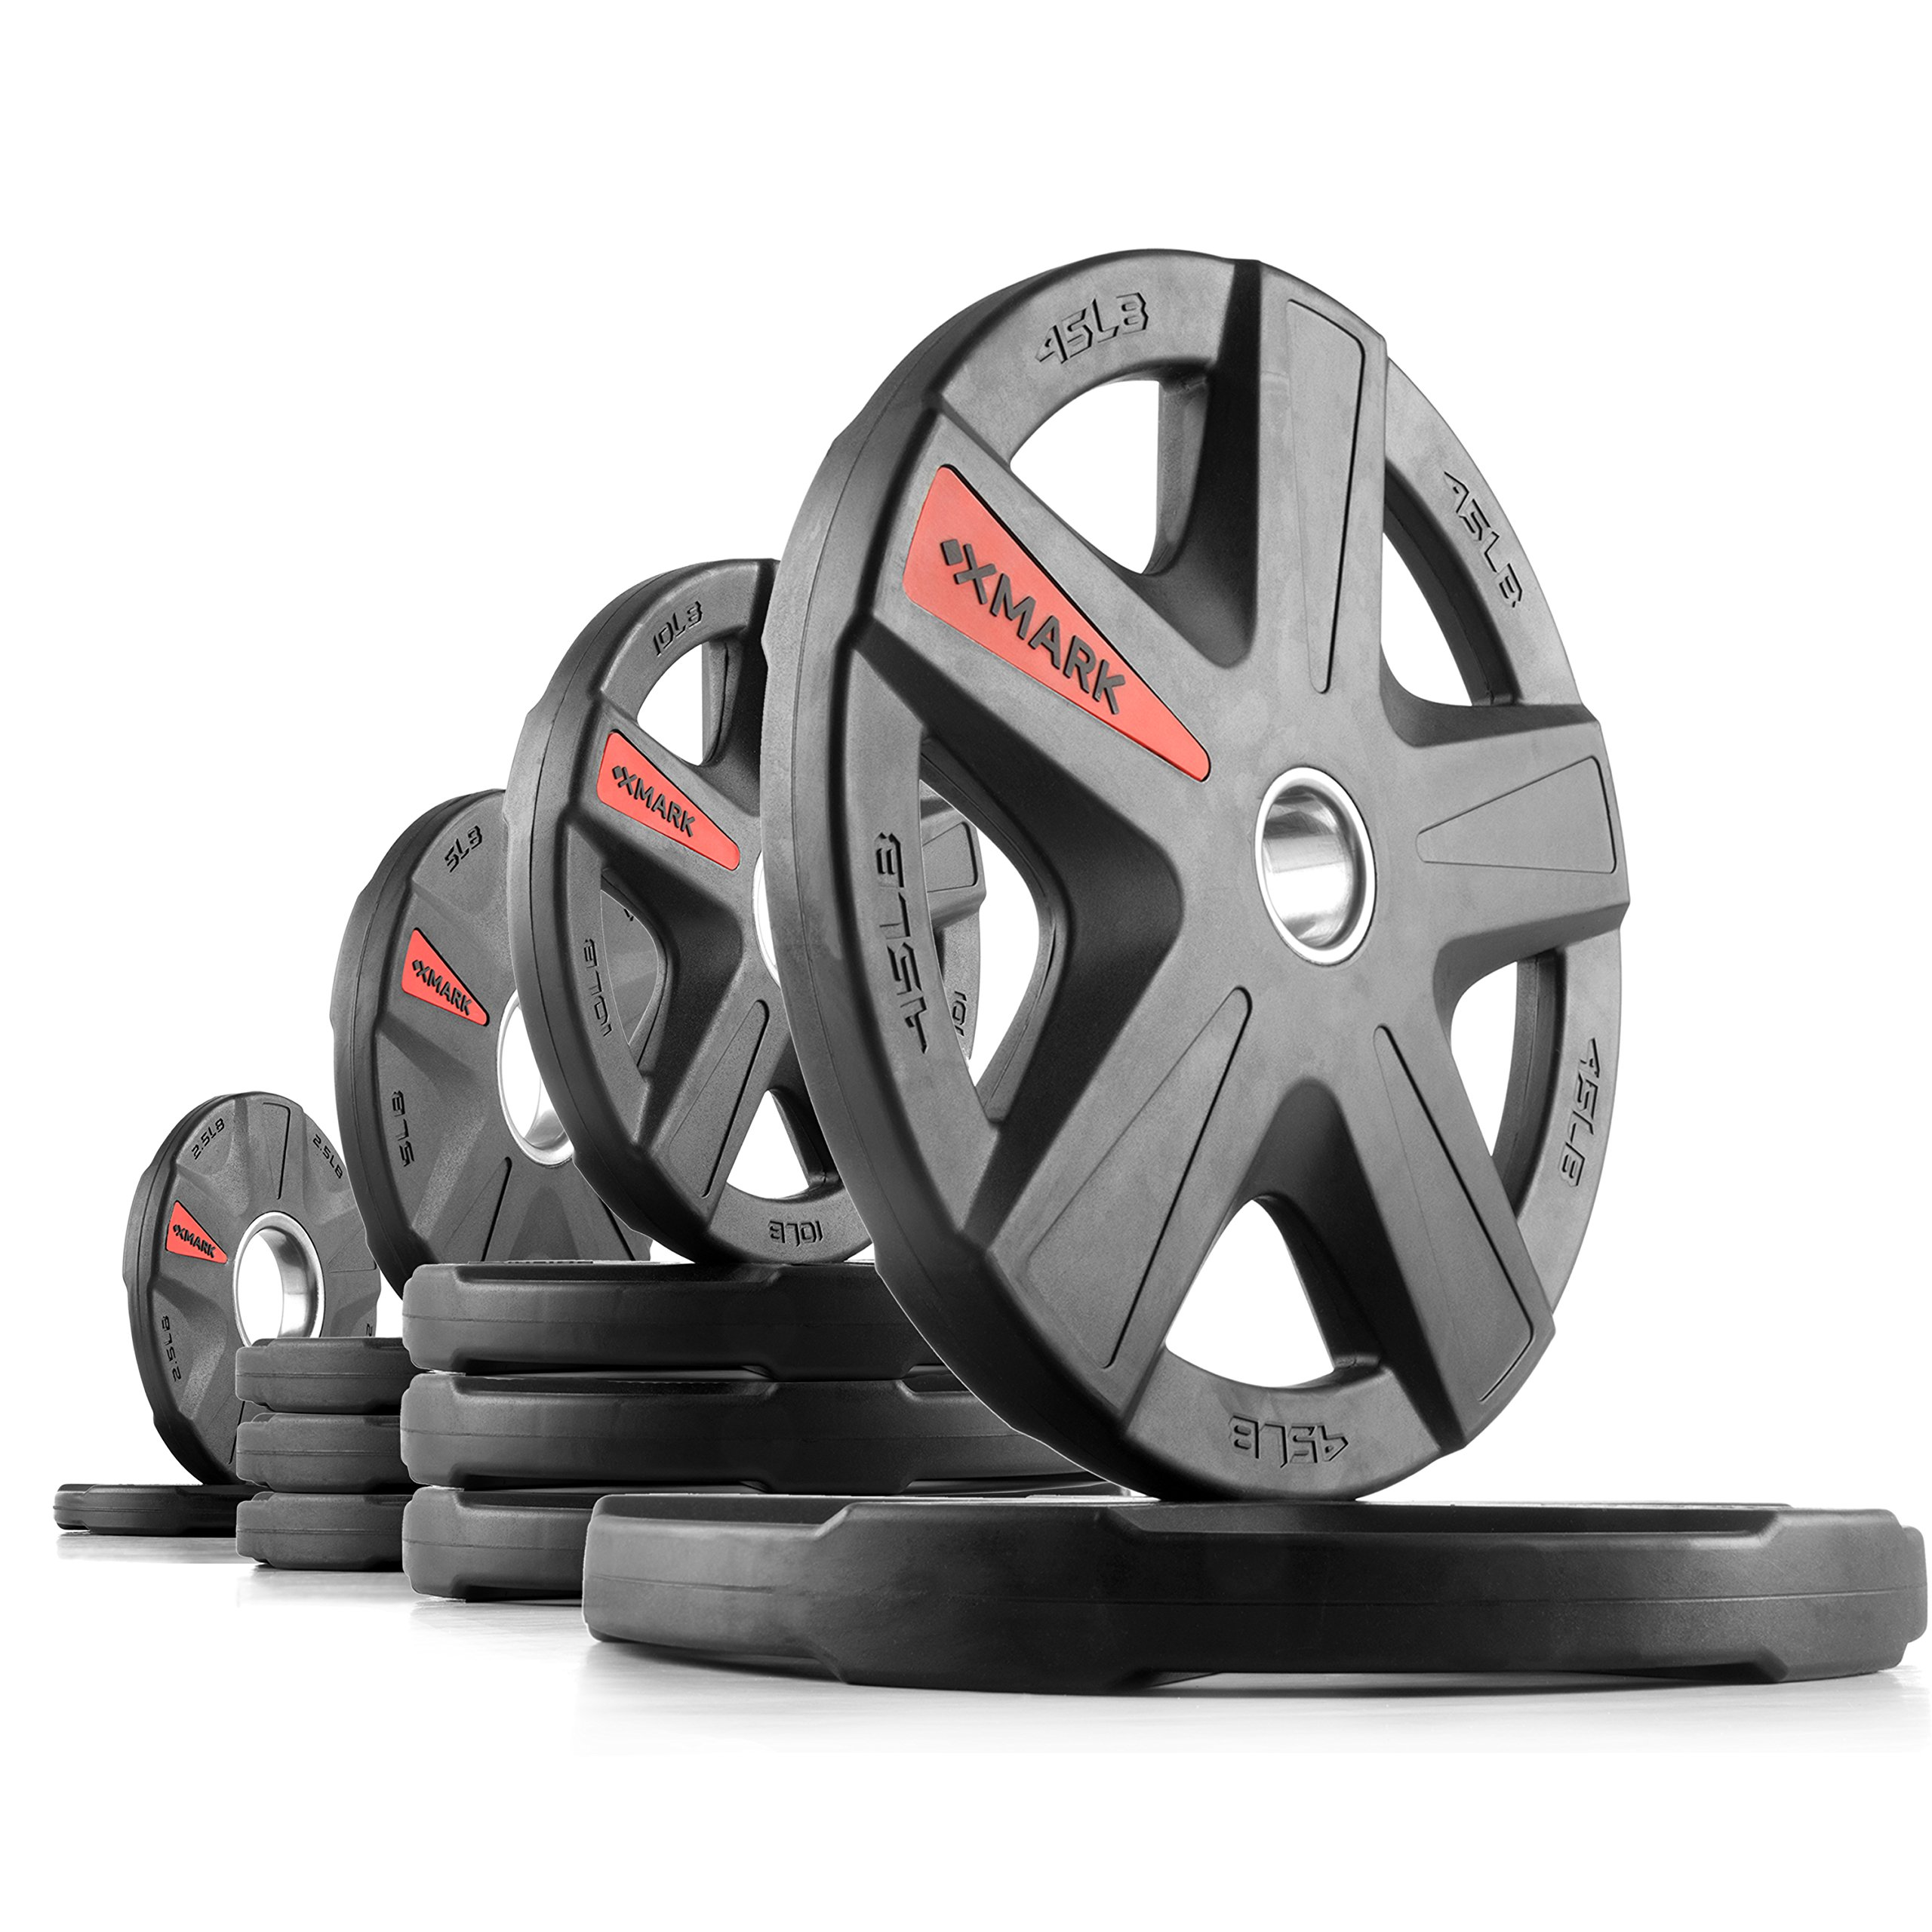 XMark Texas Star 155 lb Set Olympic Plates, Patented Design, One-Year Warranty, Olympic Weight Plates